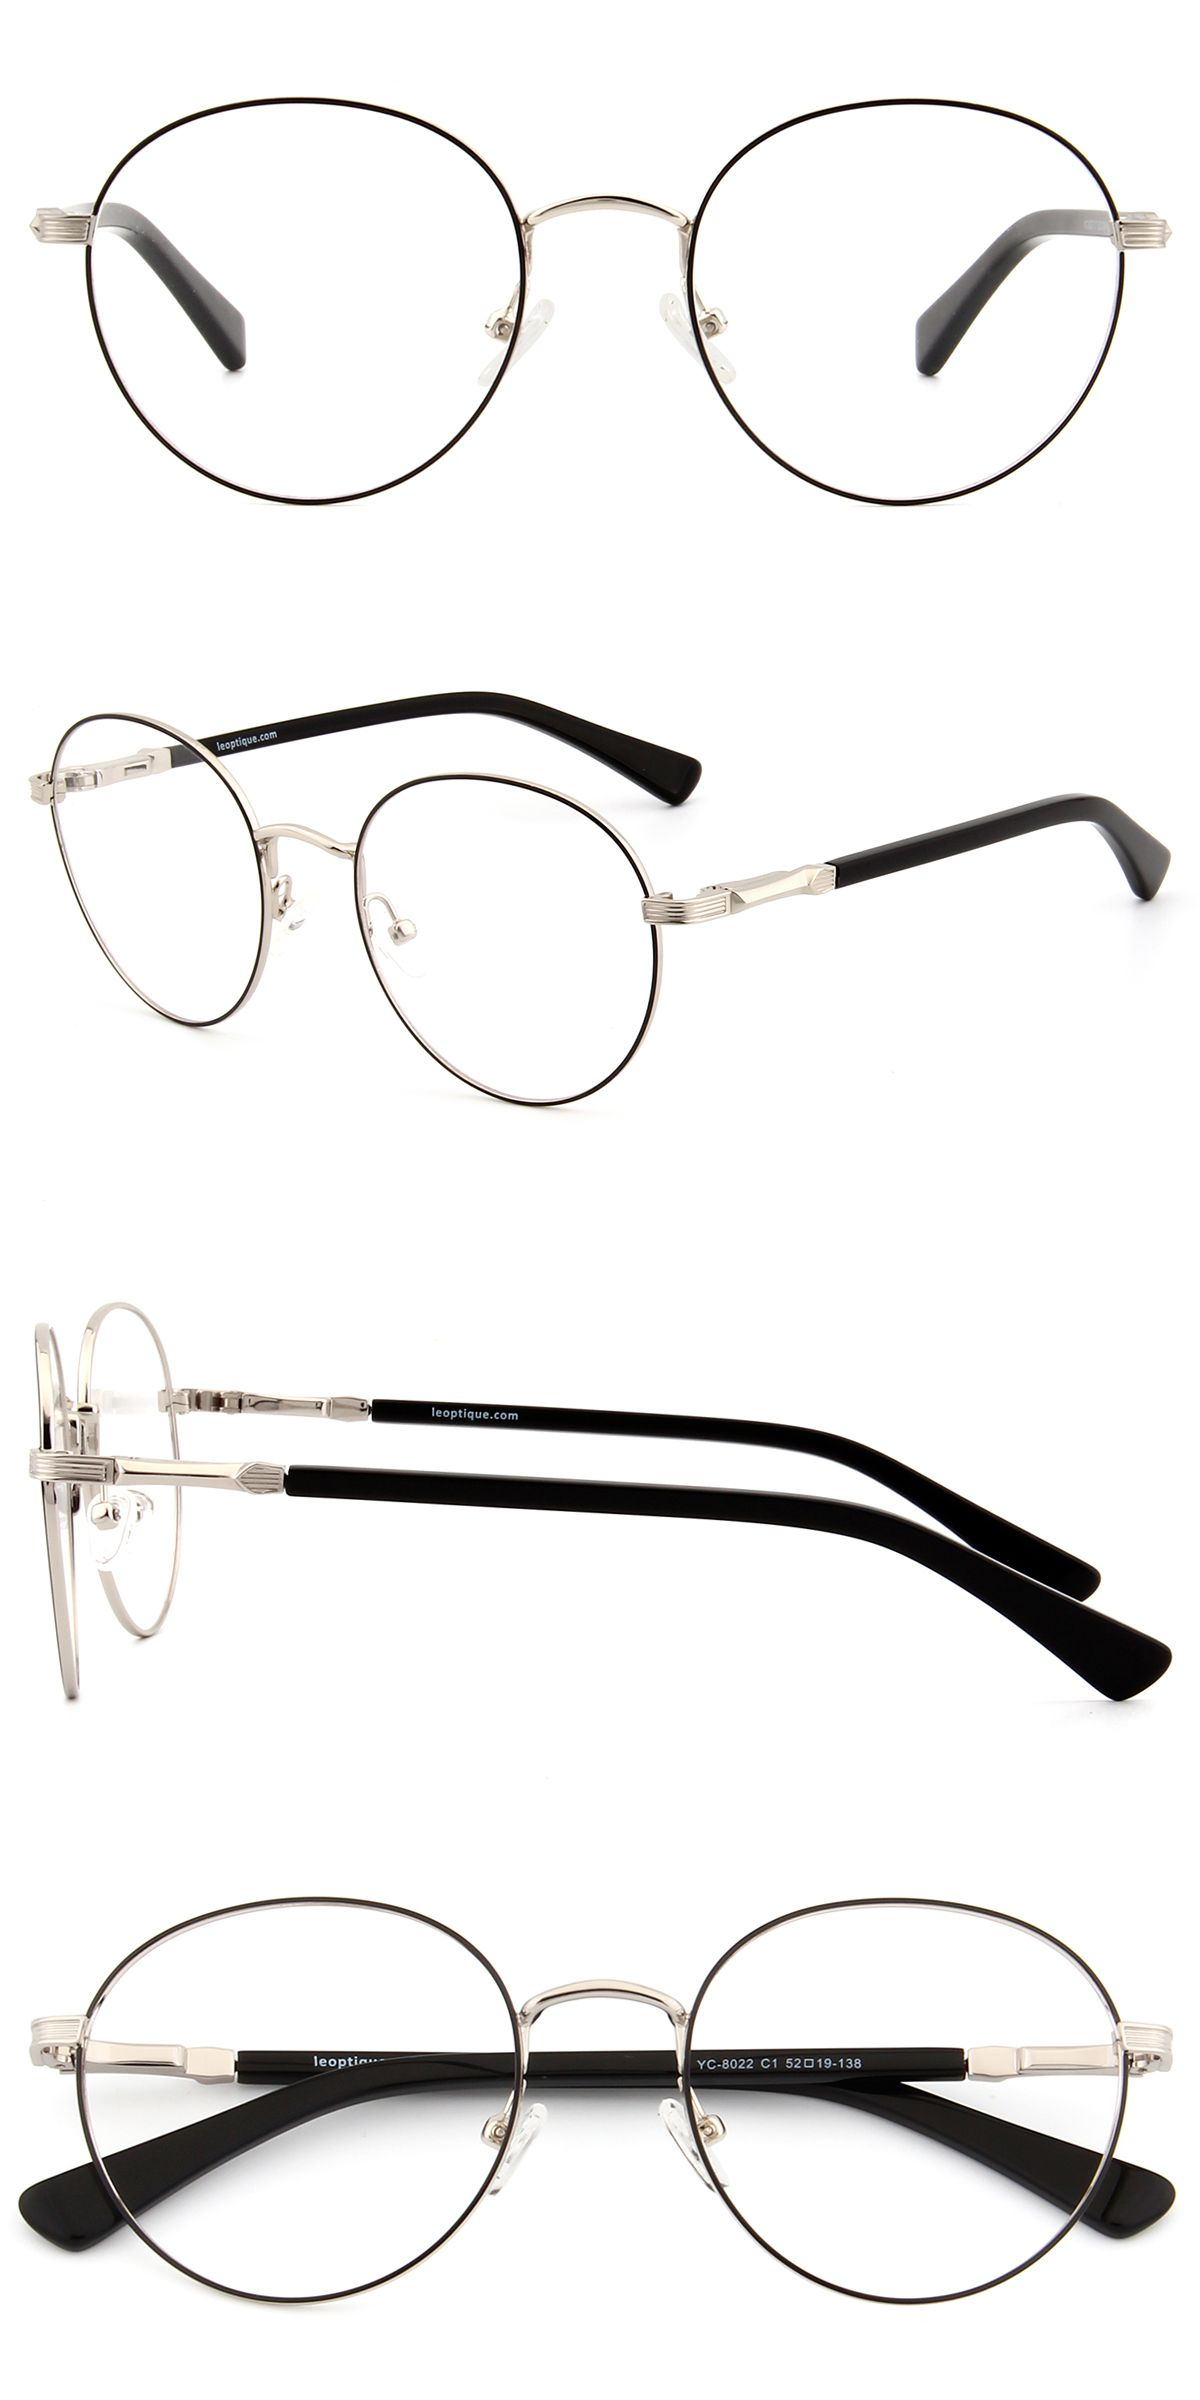 Yc 8022 Silver And Black Oculos Estilosos